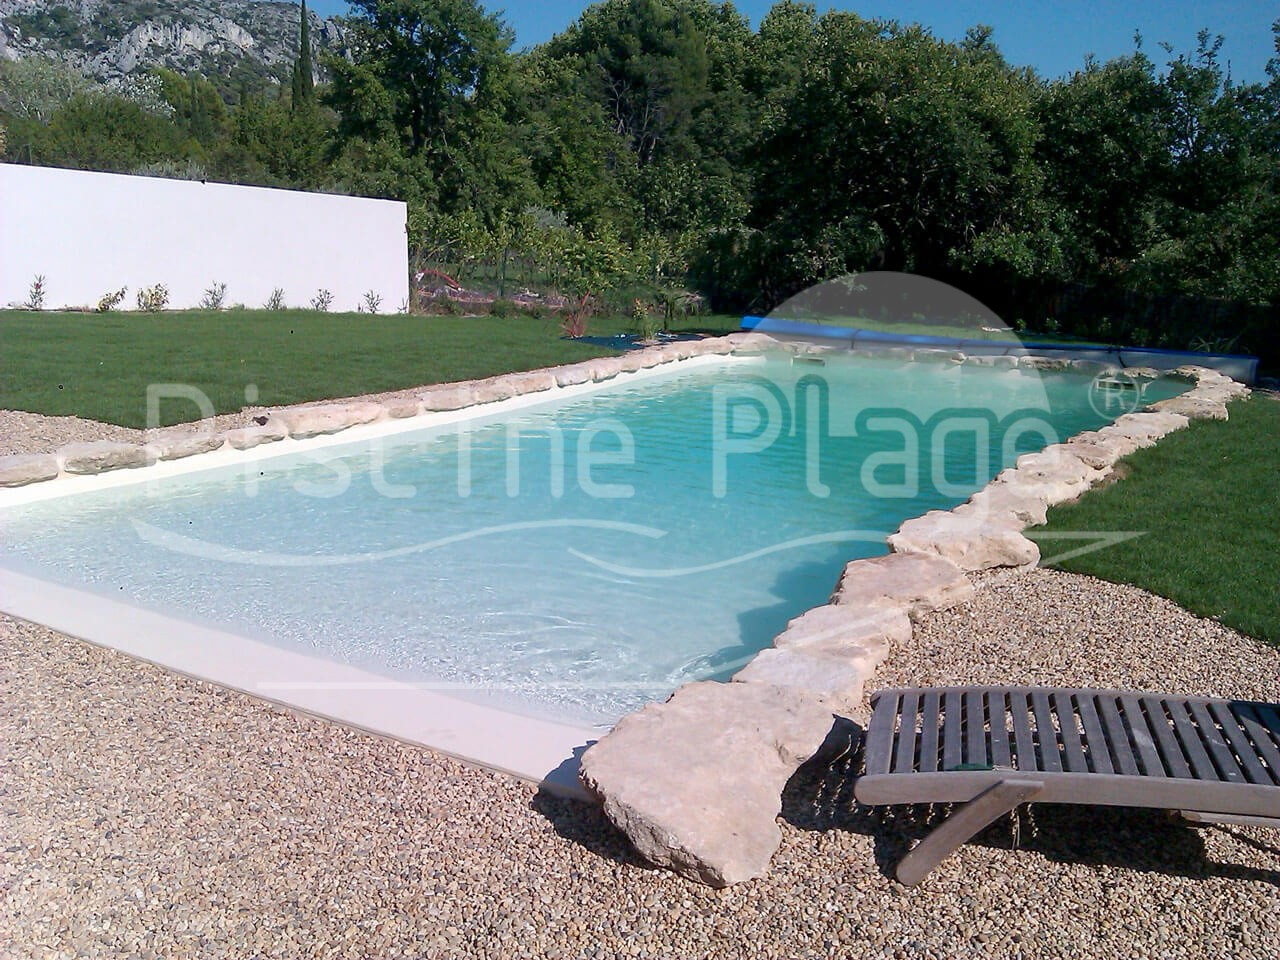 Construction de piscine apt piscine plage for Budget construction piscine